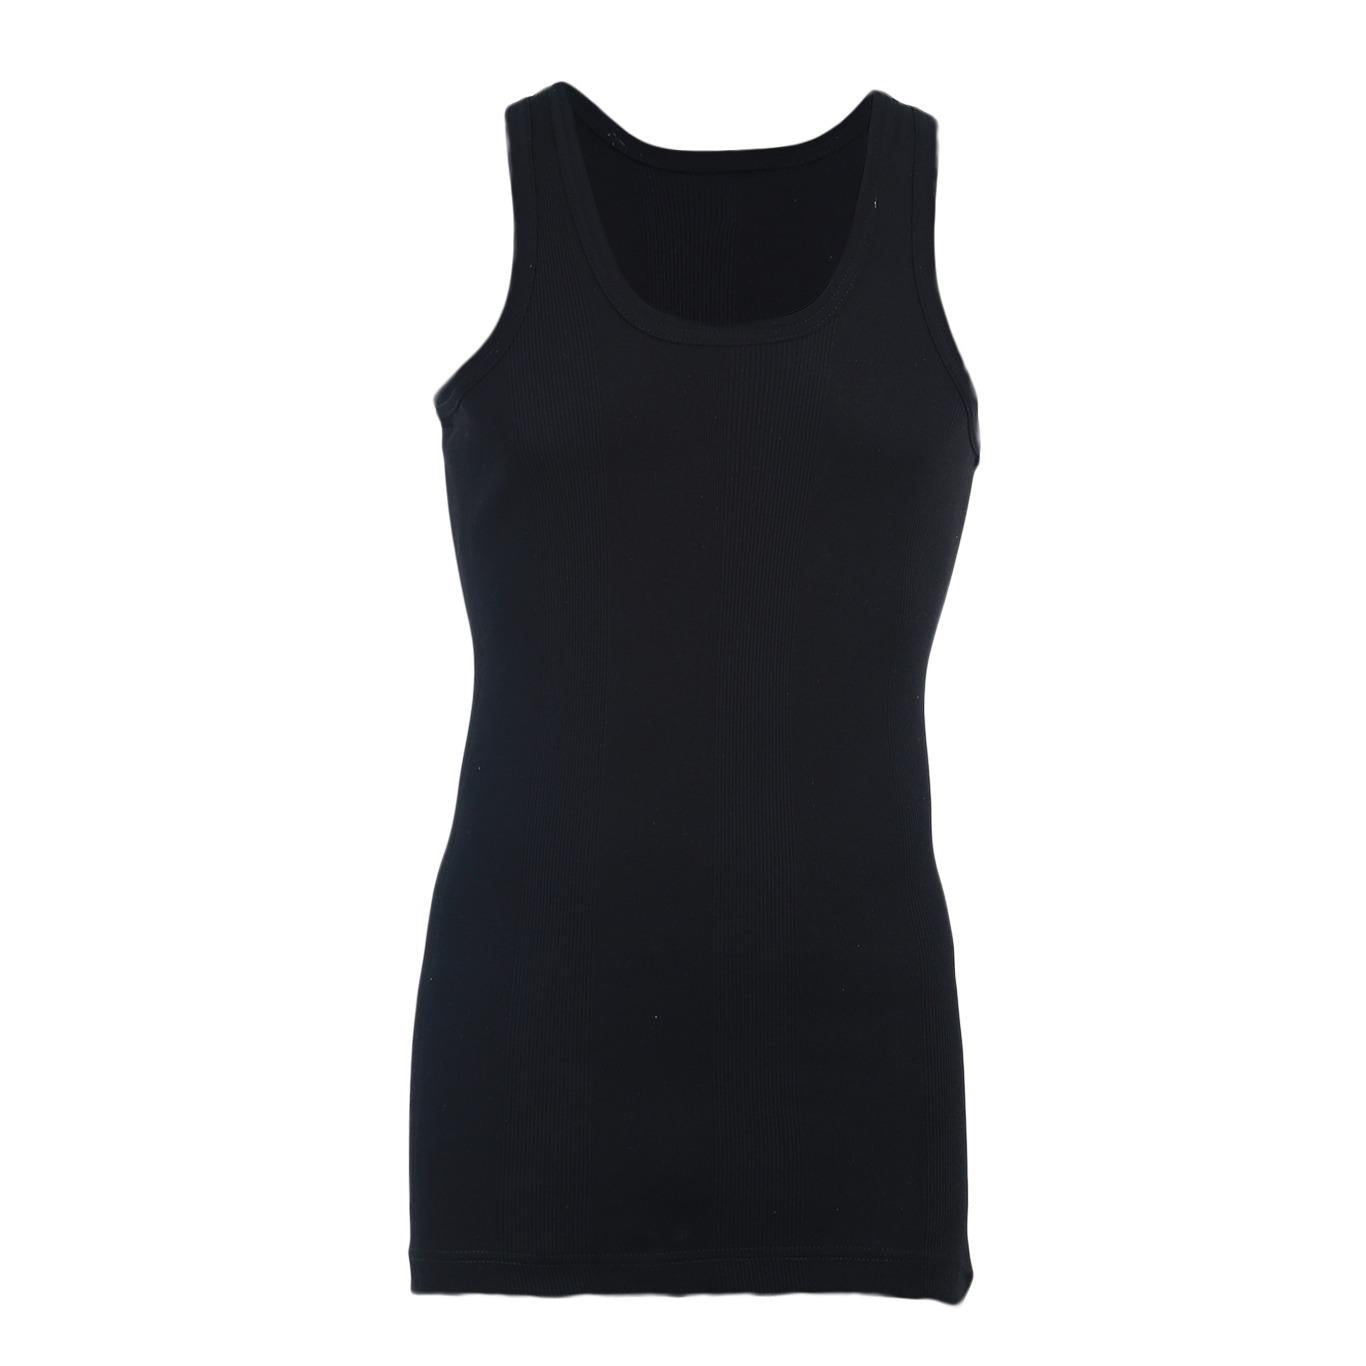 Softy Pure Cotton Ribbed Vest for Men - Black UG-446-S